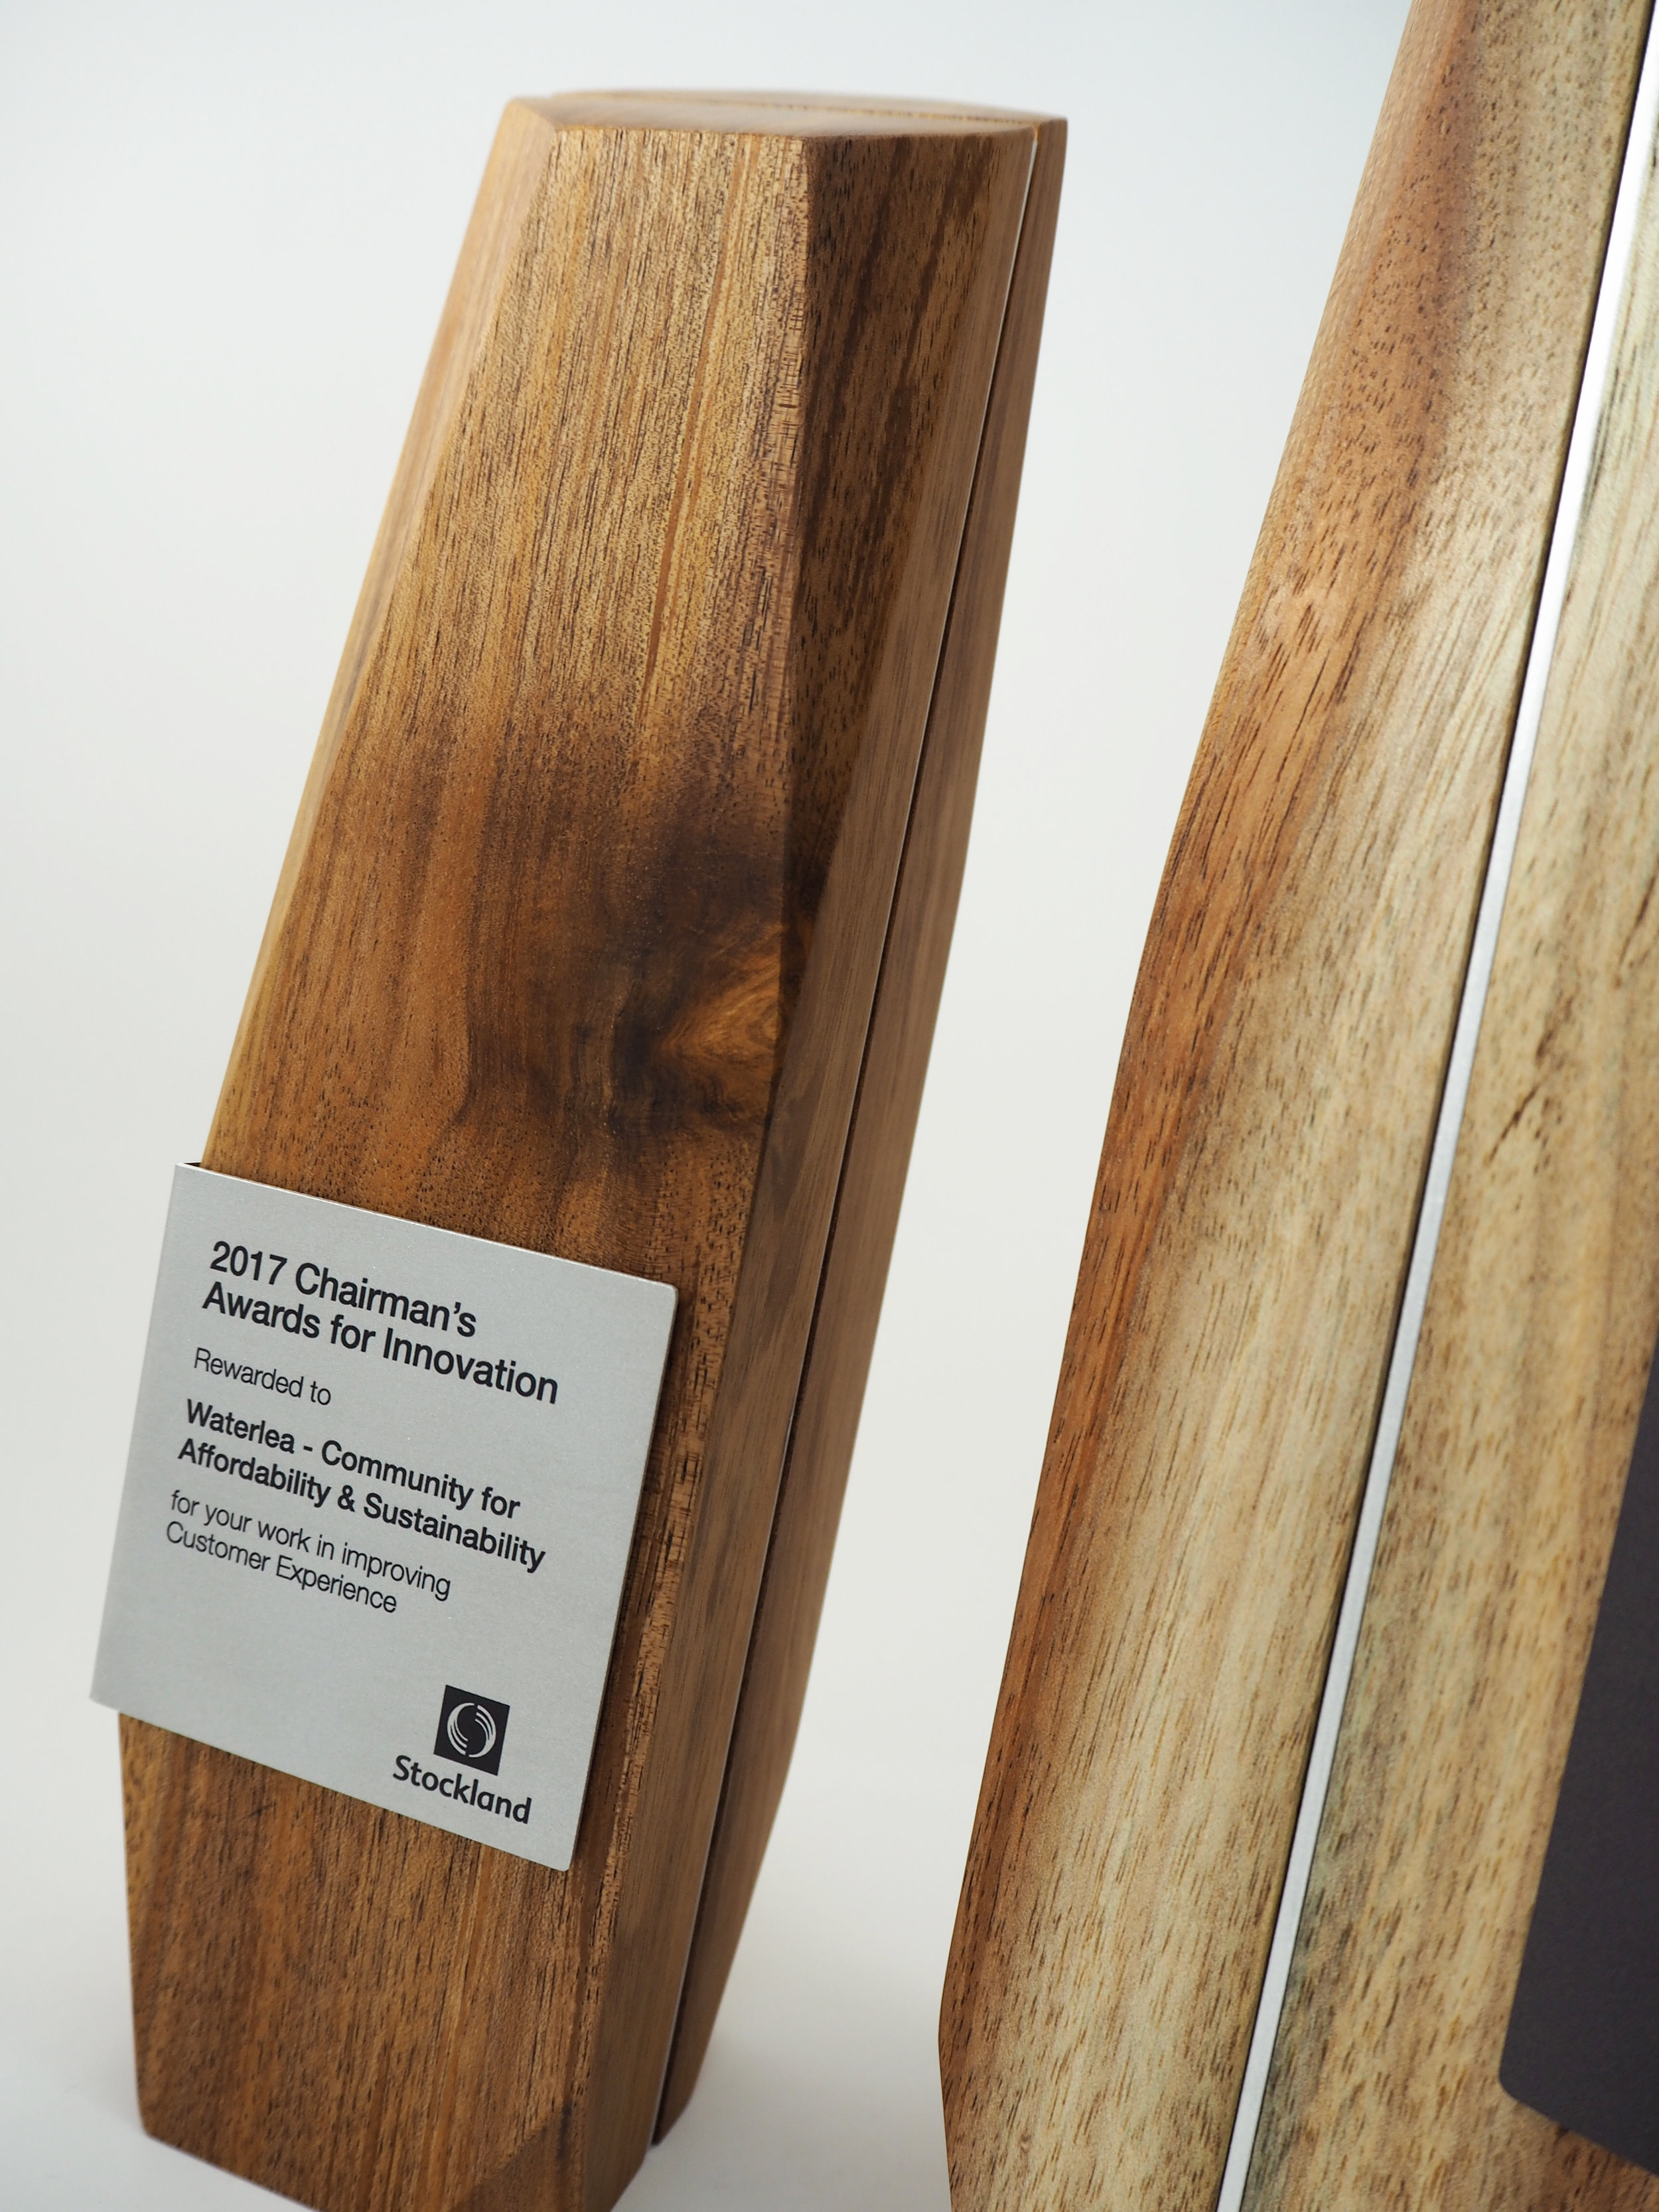 Stockland-Chairmans-timber-eco-trophy-awards-05.jpg